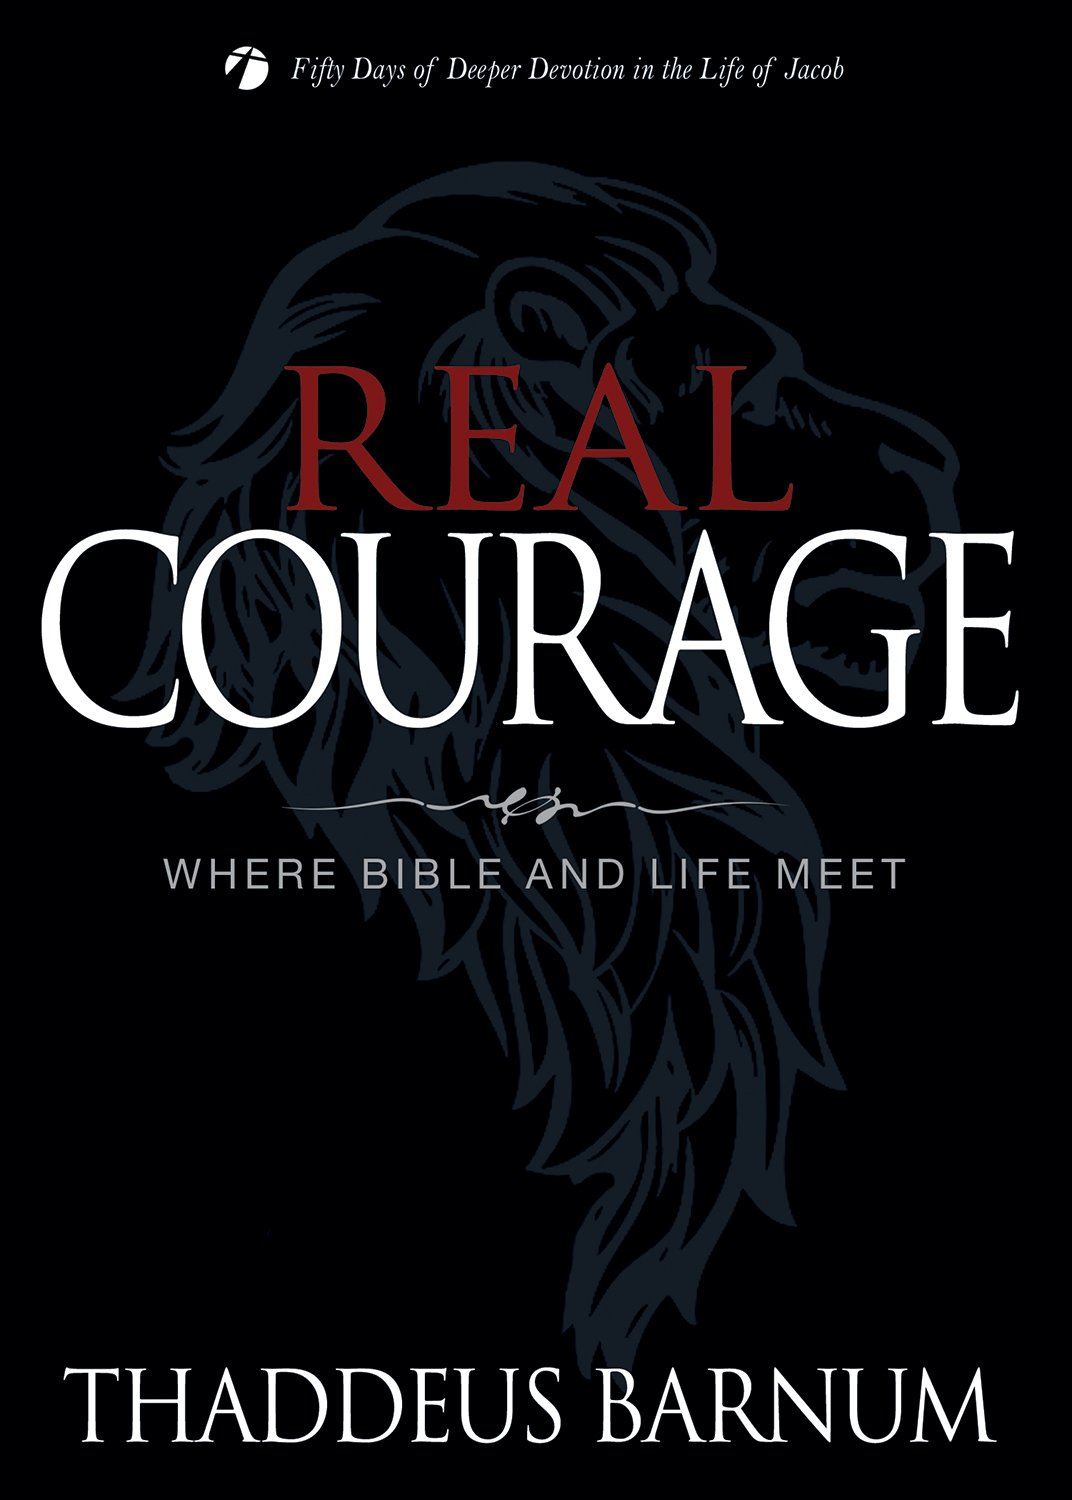 Real Courage: Where Bible and Life Meet (Deeper Devotion (Thaddeus Barnum))